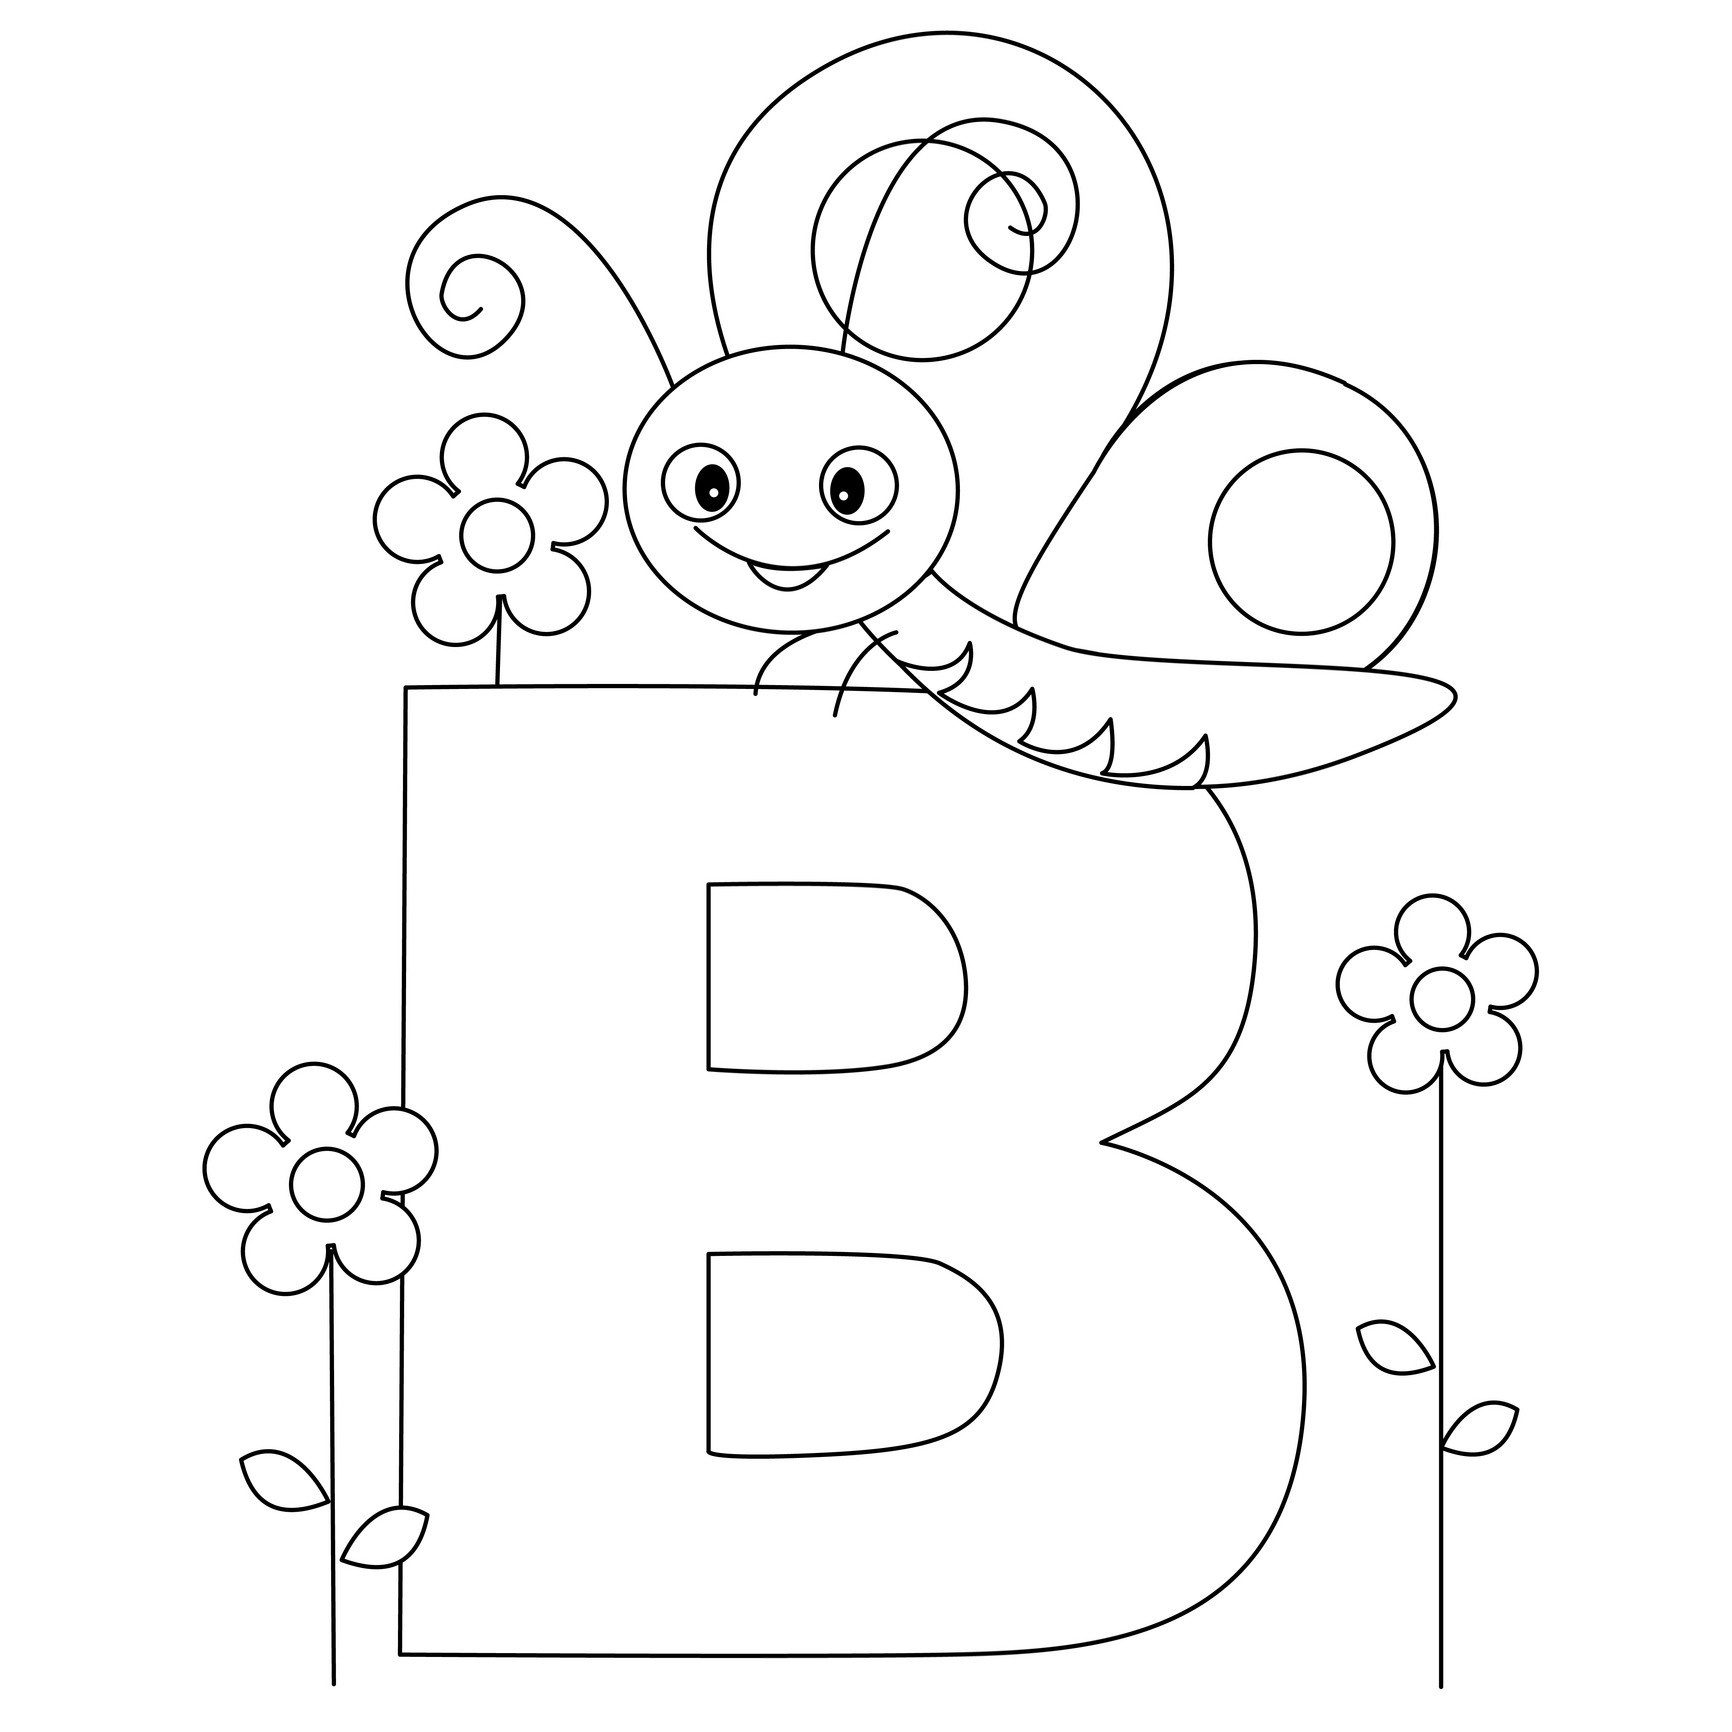 Alphabet Printable Coloring Pages | Presidencycollegekolkata - Free Printable Alphabet Coloring Pages